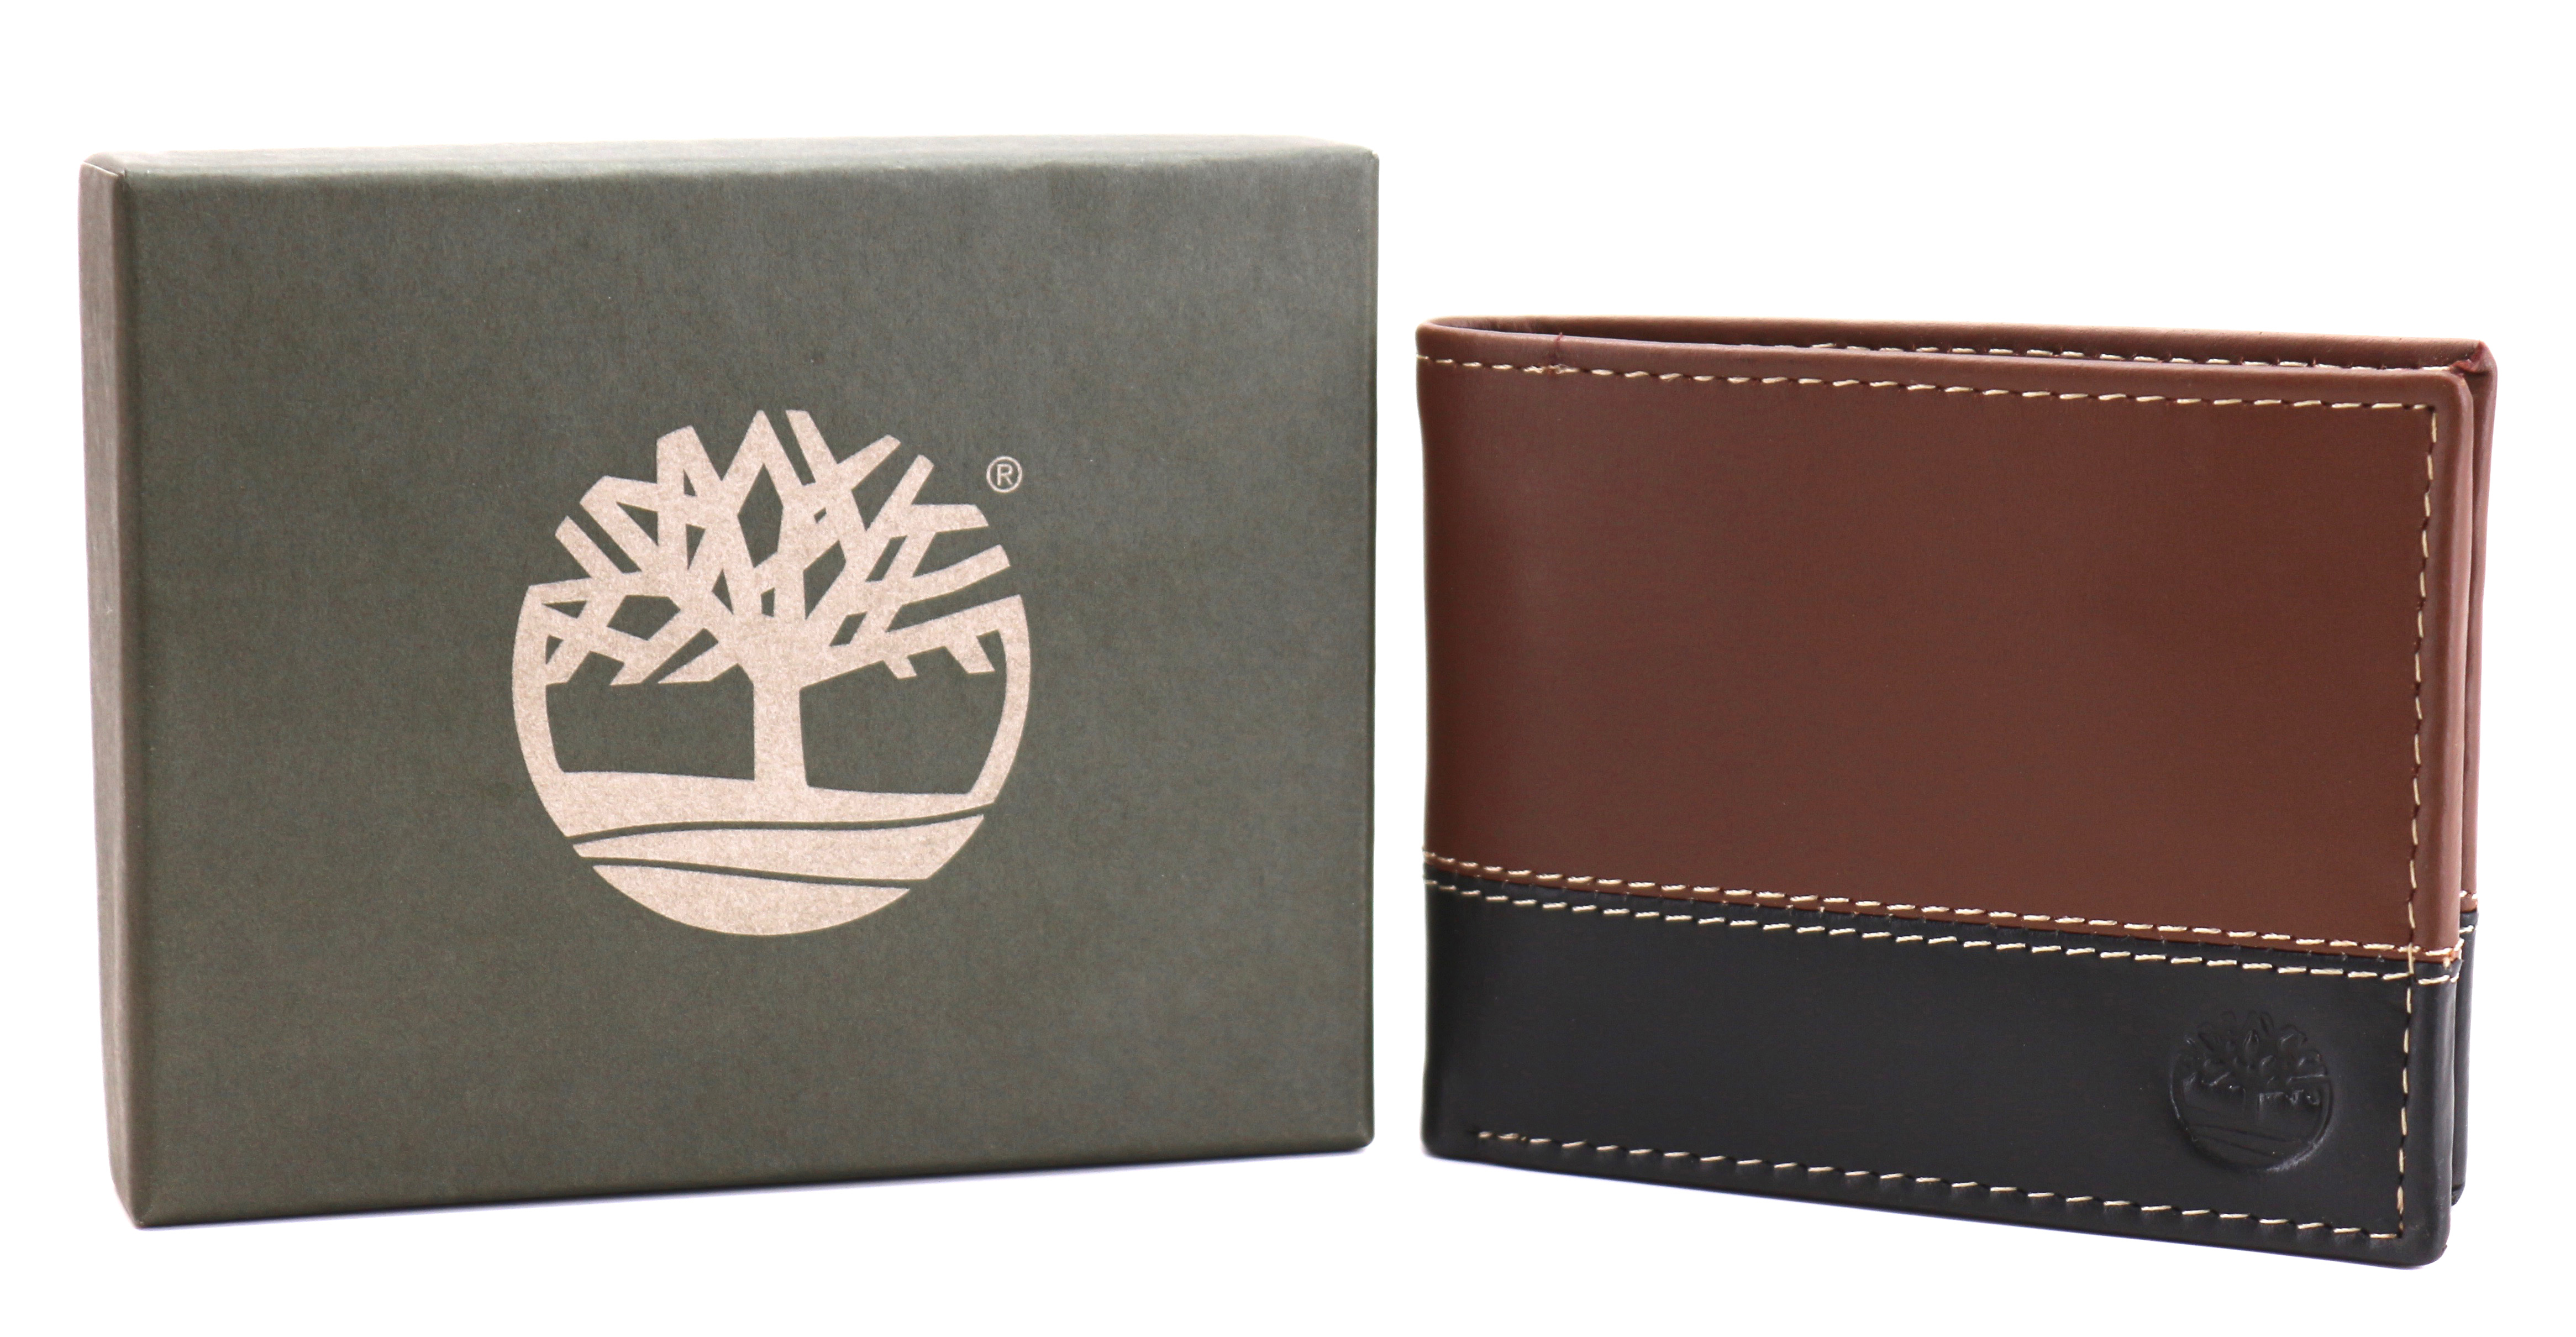 Timberland-Men-039-s-Genuine-Two-Tone-Leather-Credit-Card-Billfold-Commuter-Wallet thumbnail 34